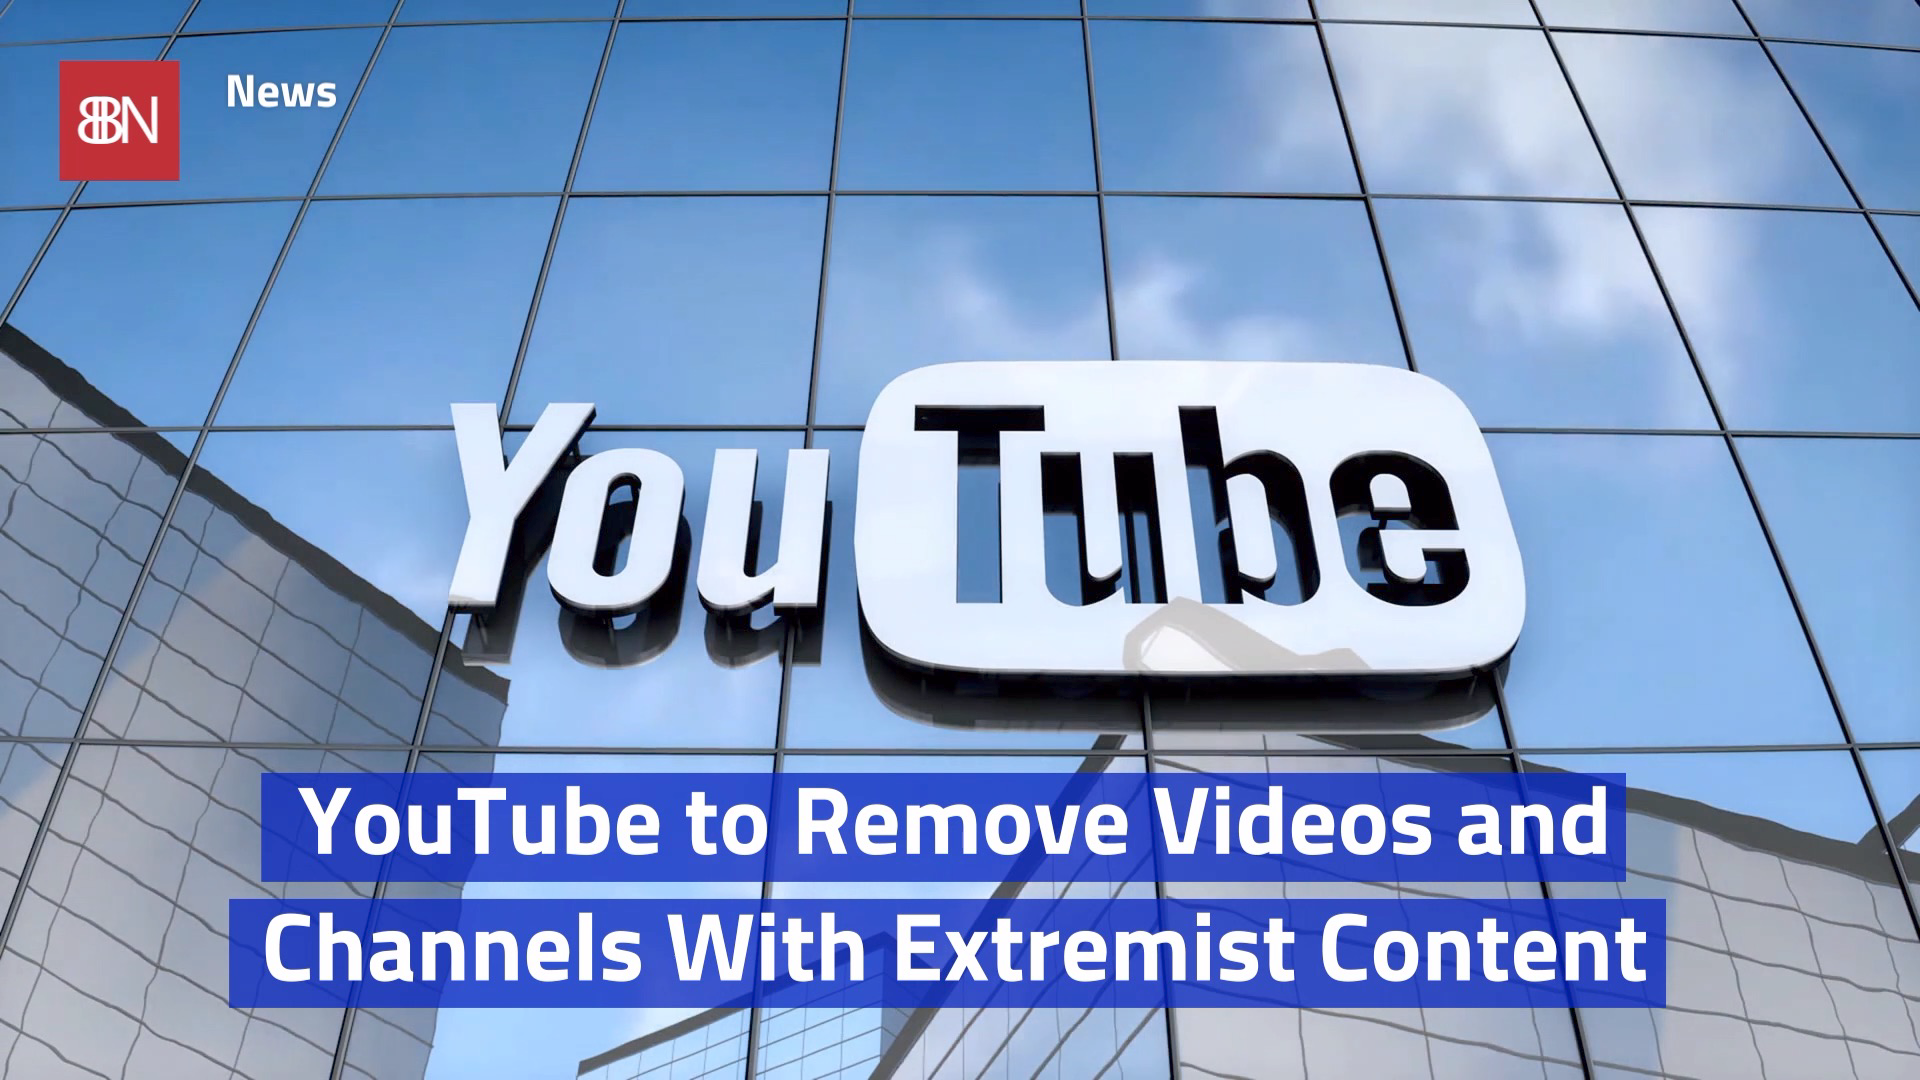 YouTube Uses Their Power Against Extremist Content